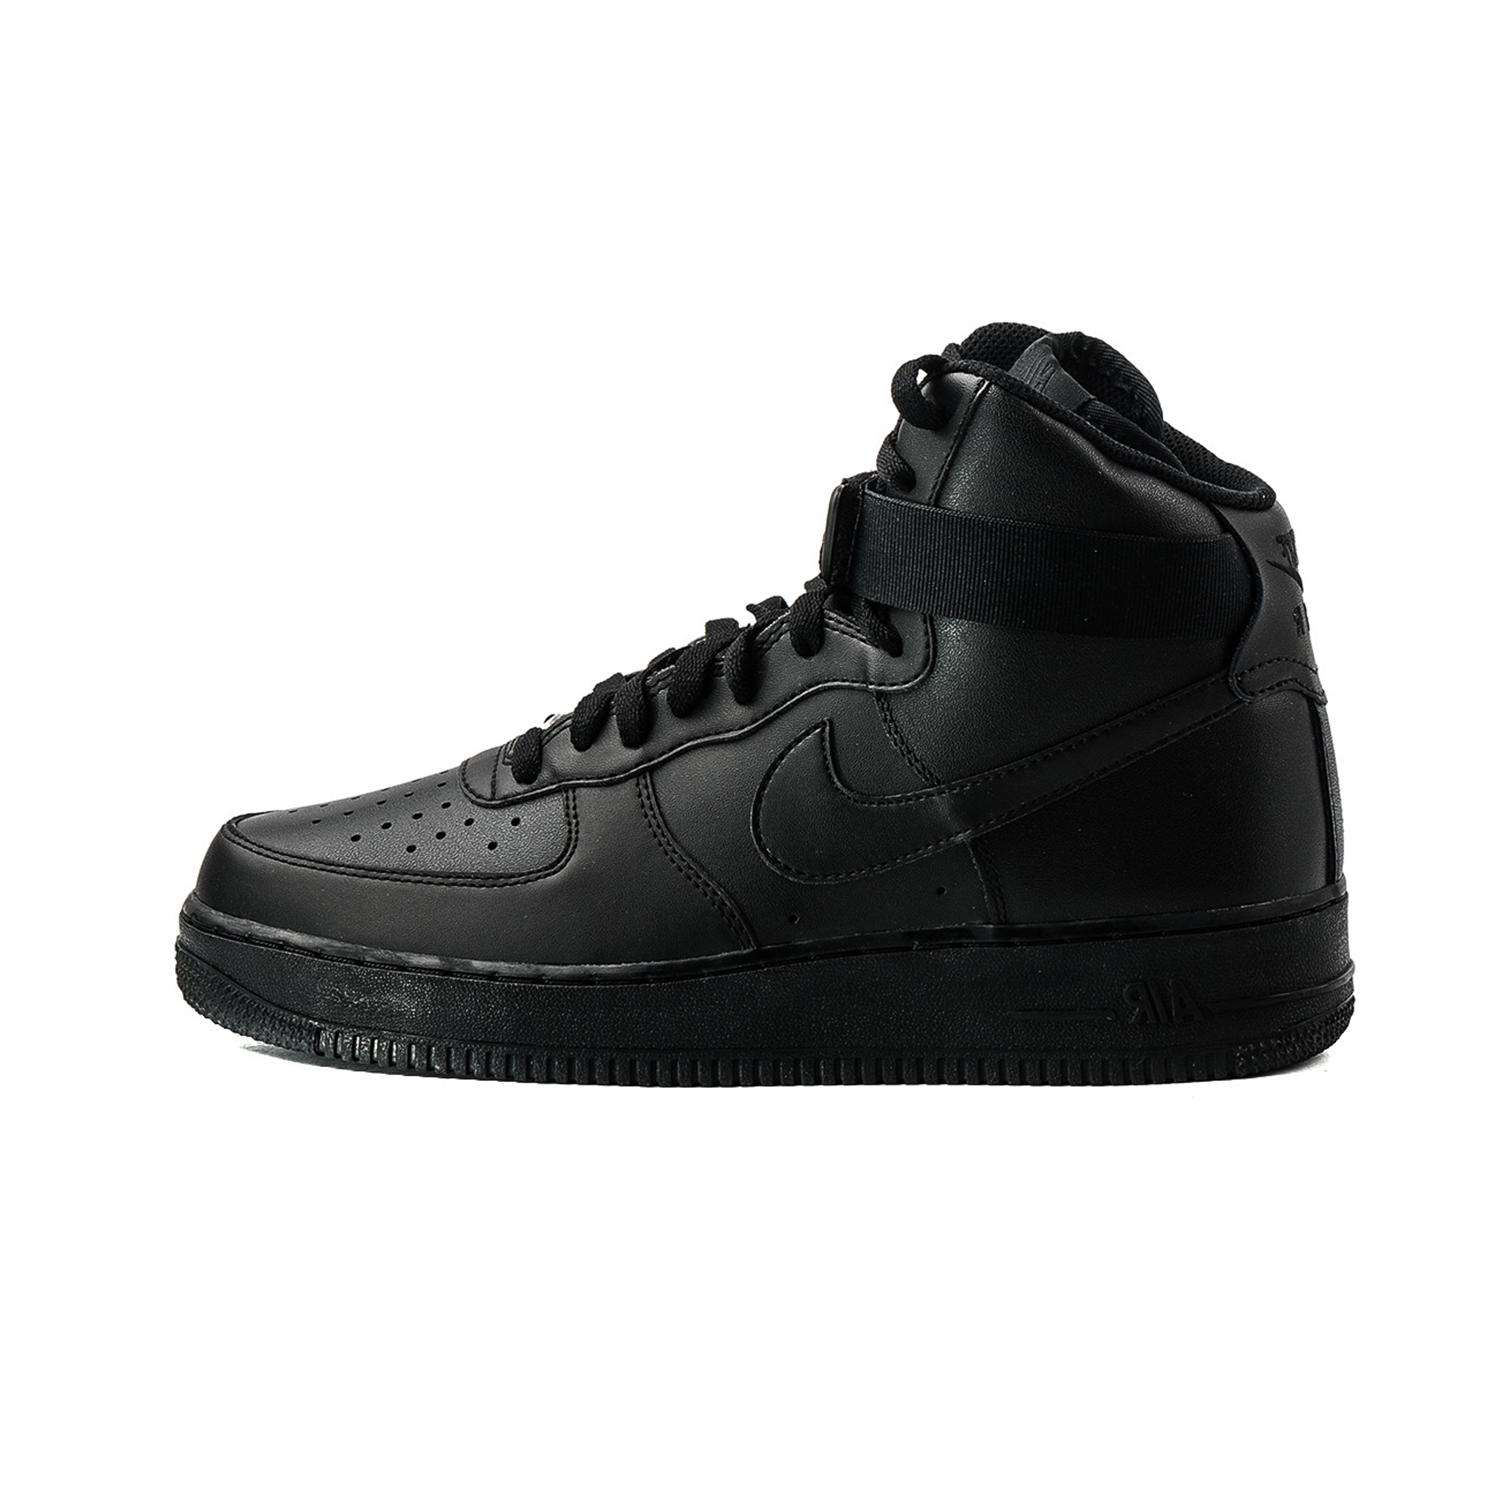 separation shoes 65f63 65bee NIKE AIR FORCE ONE HIGH SNEAKER - TRIPLE BLACK